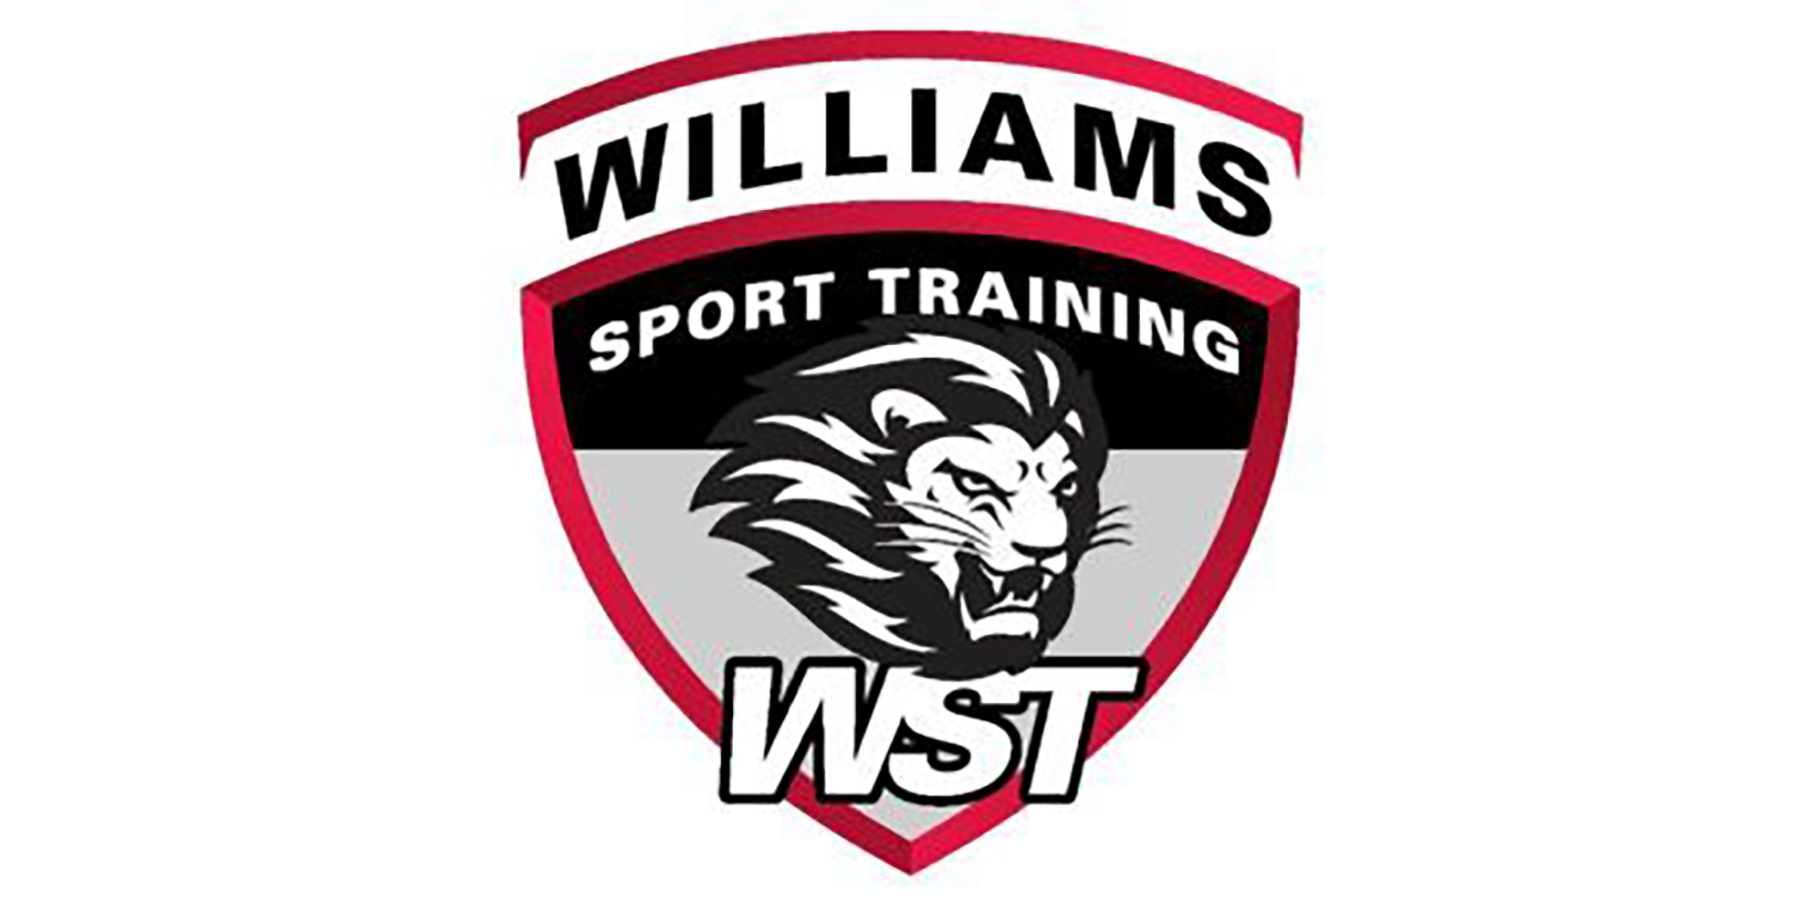 Williams Sport Training LLC